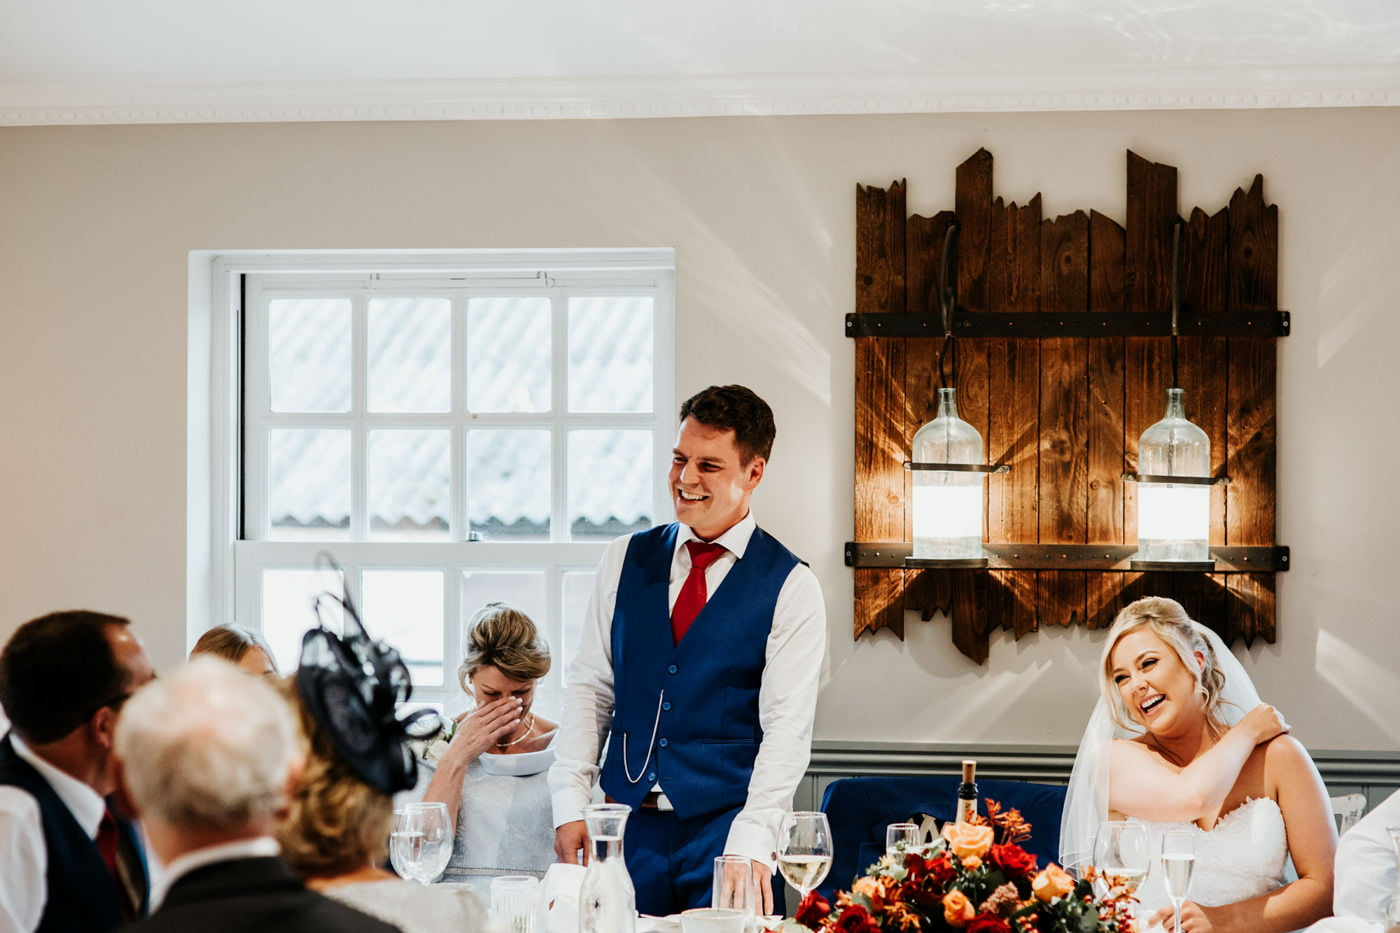 Natalie and Rob, Widbrook Grange, Wiltshire 21